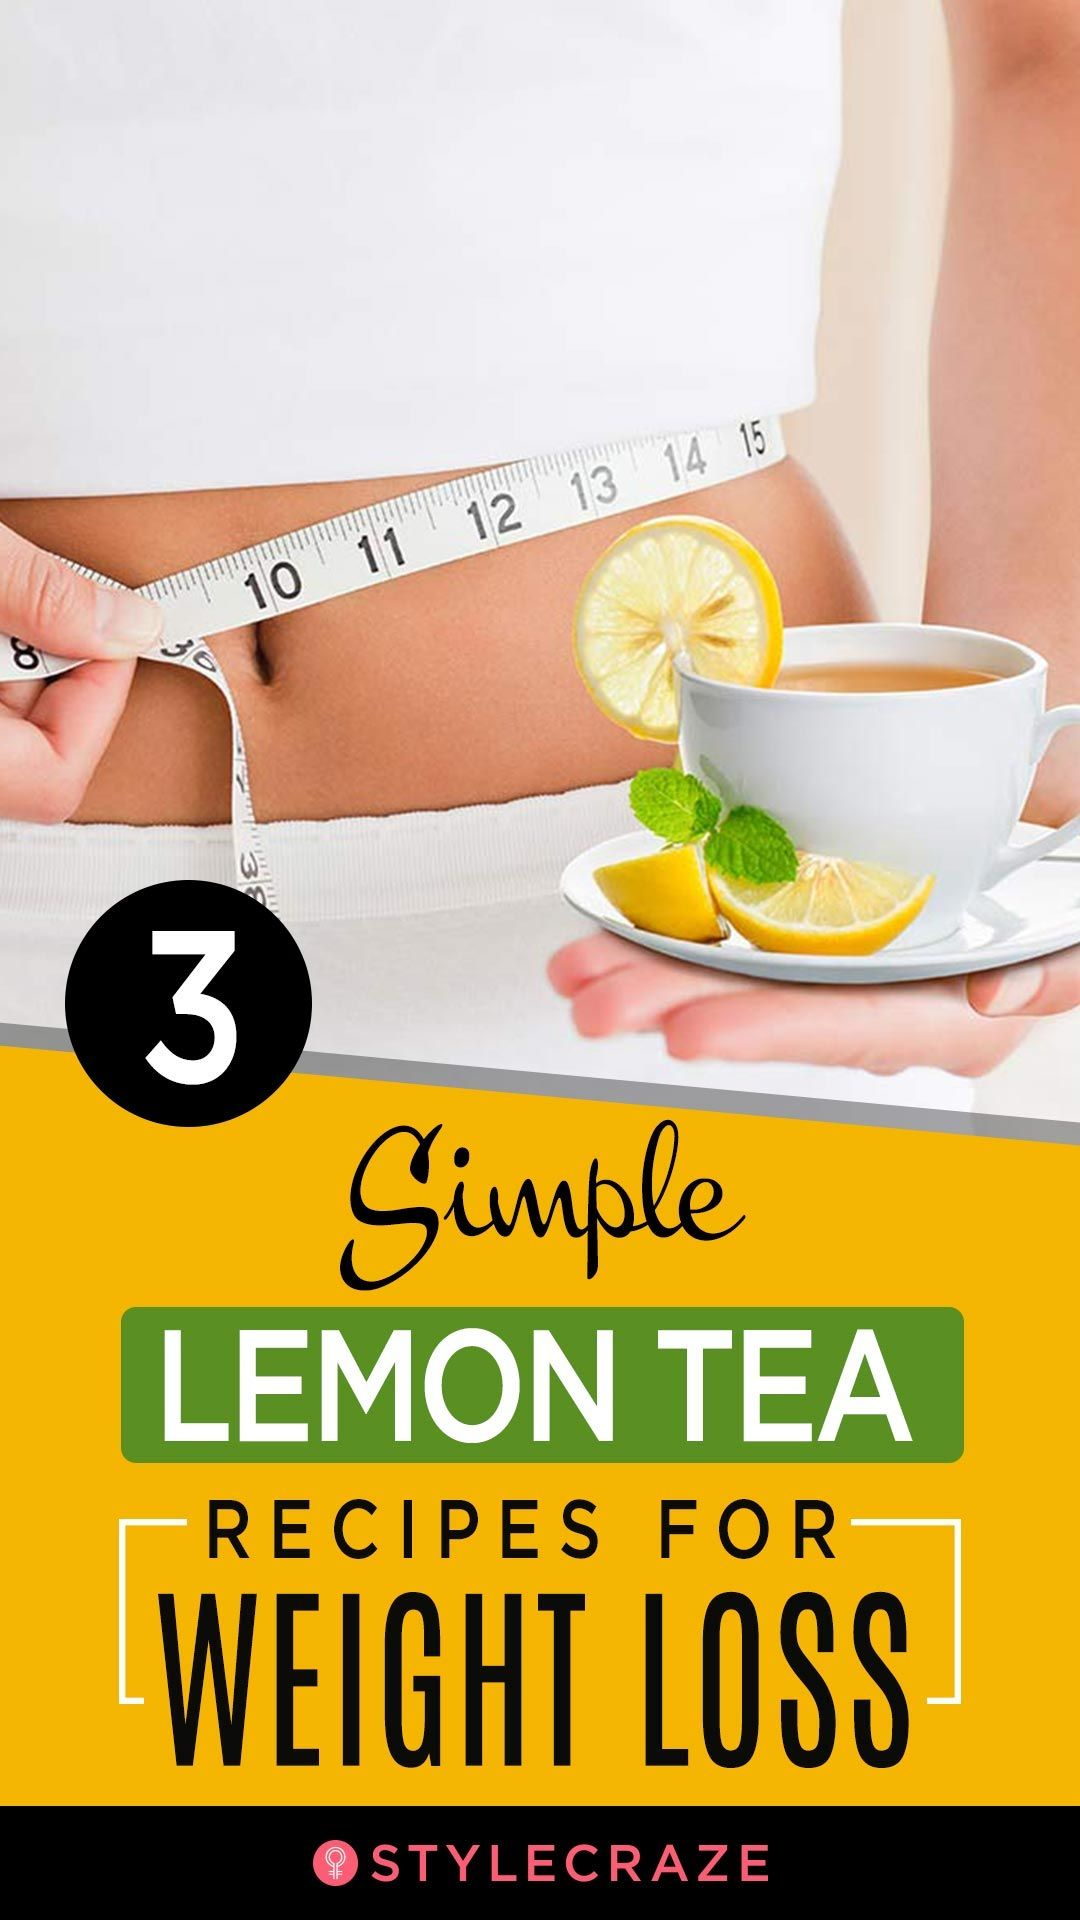 3 Simple Lemon Tea Recipes For Weight Loss